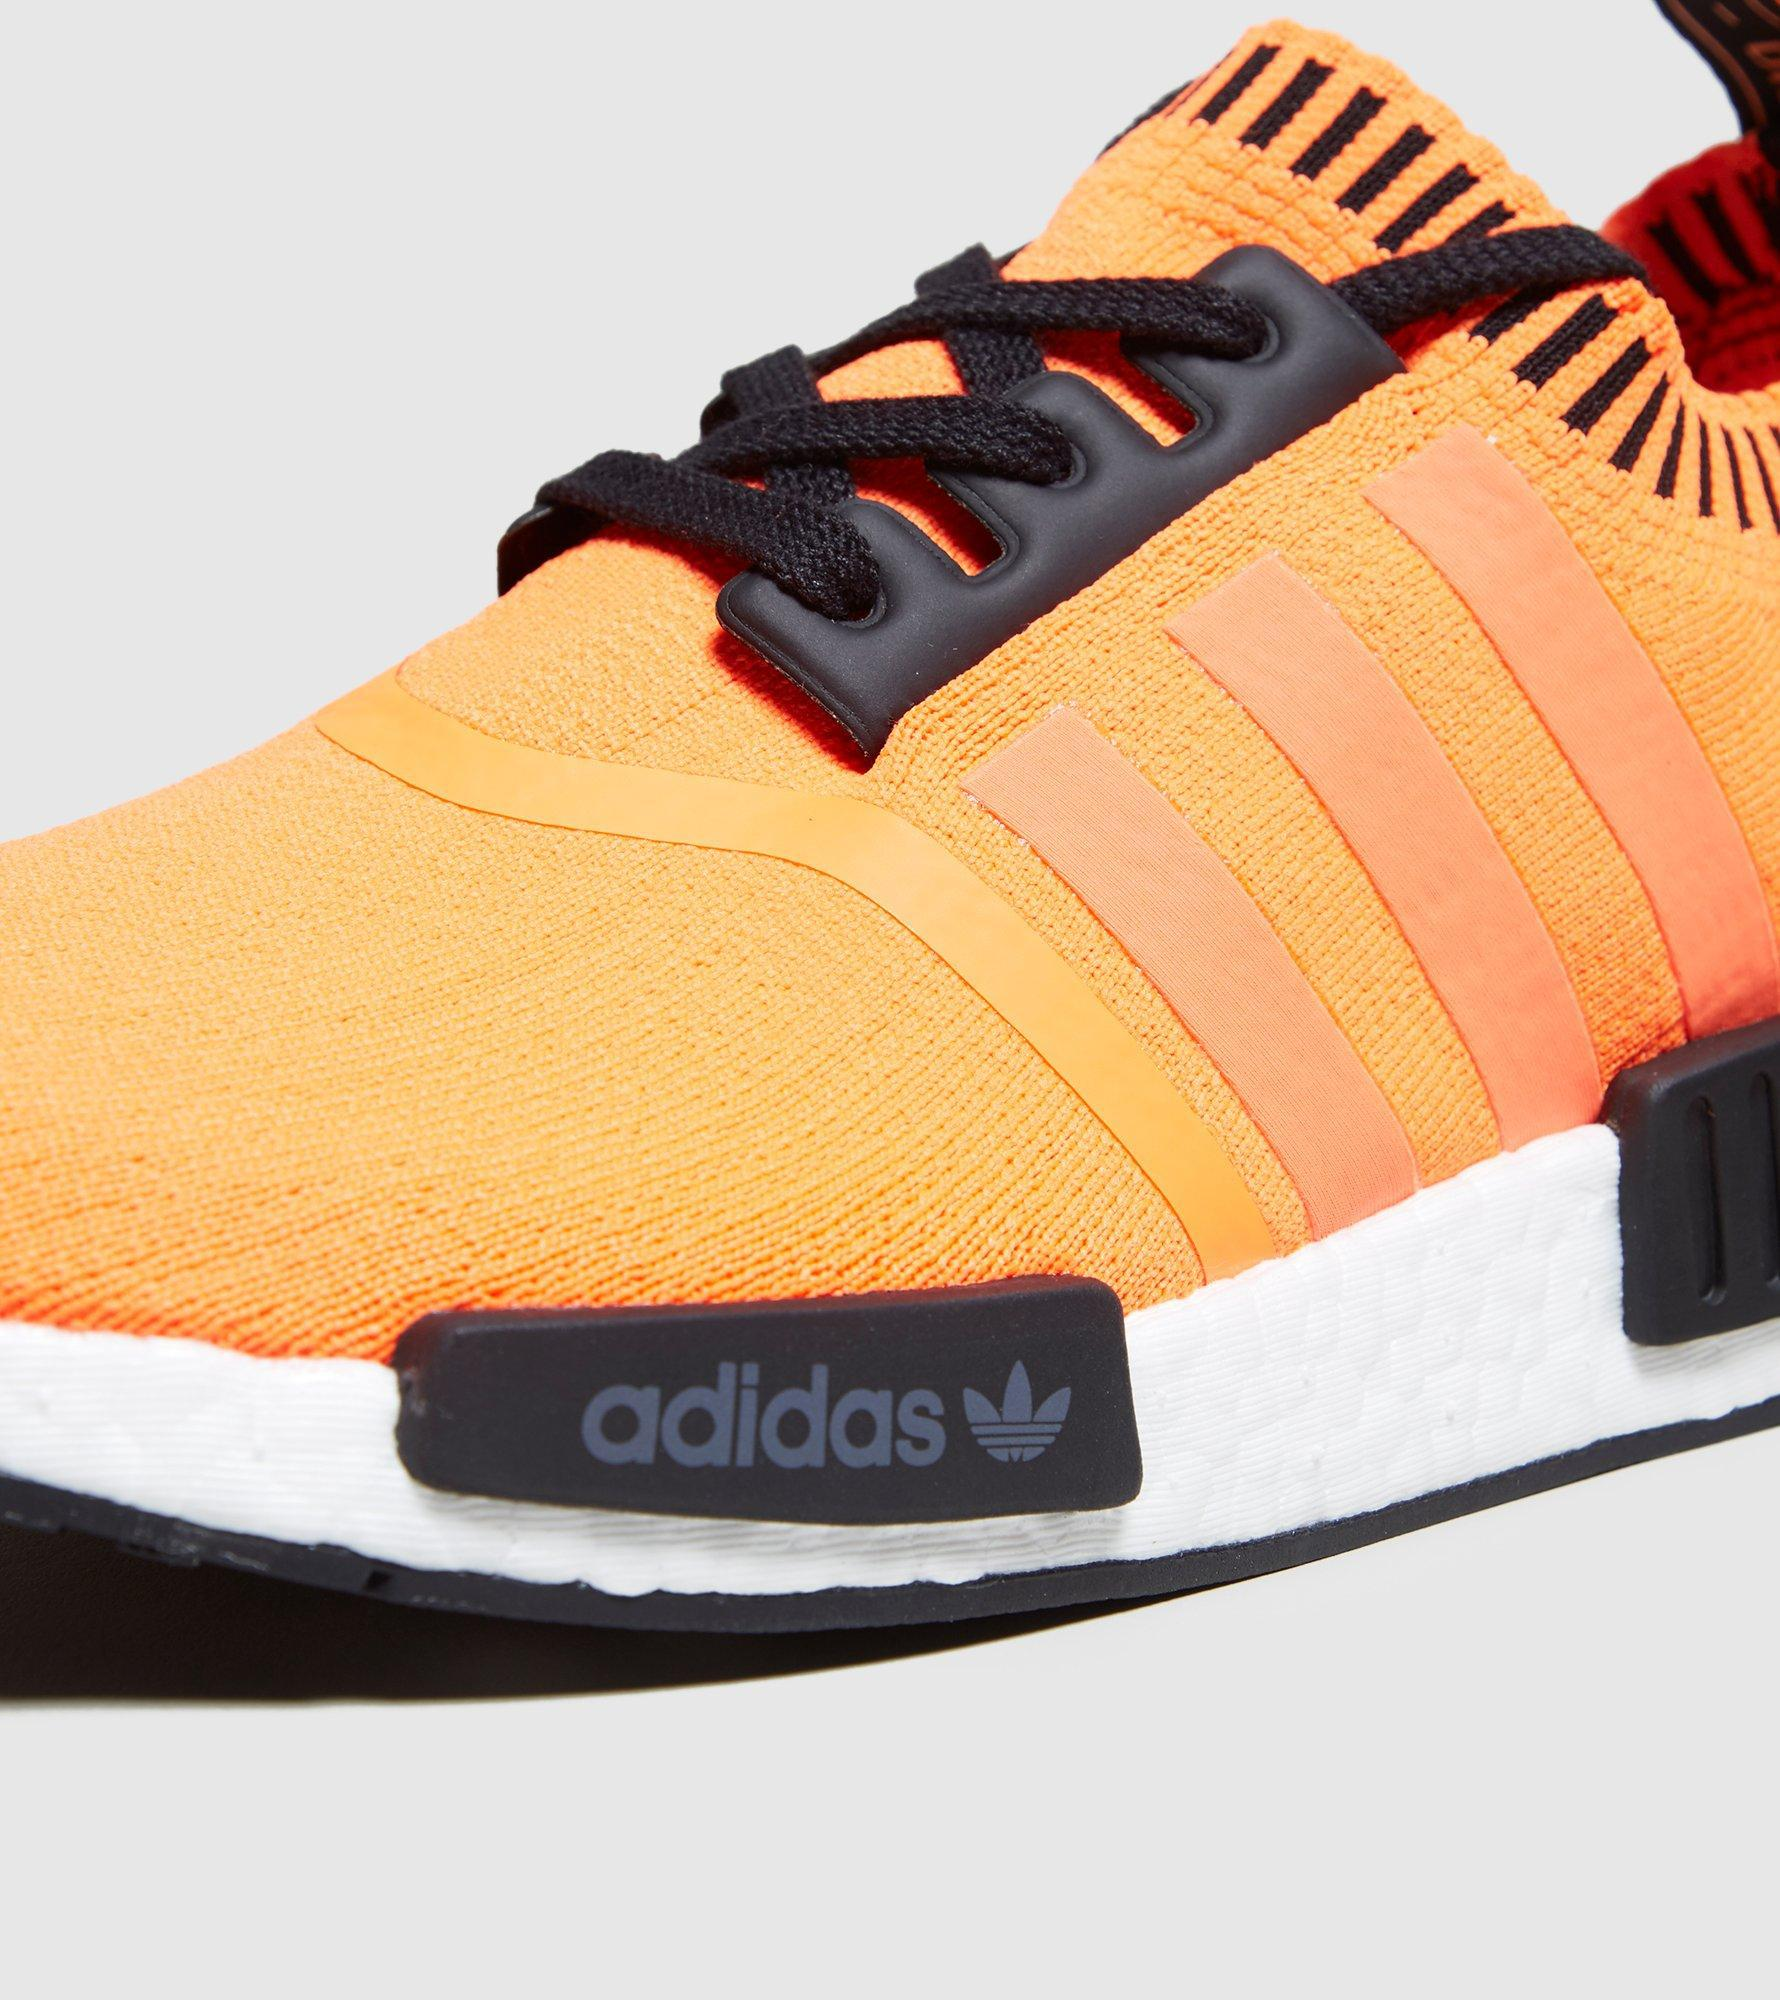 4ce15e4239951 Lyst - adidas Originals Nmd R1 Orange Noise - Size  Exclusive in ...